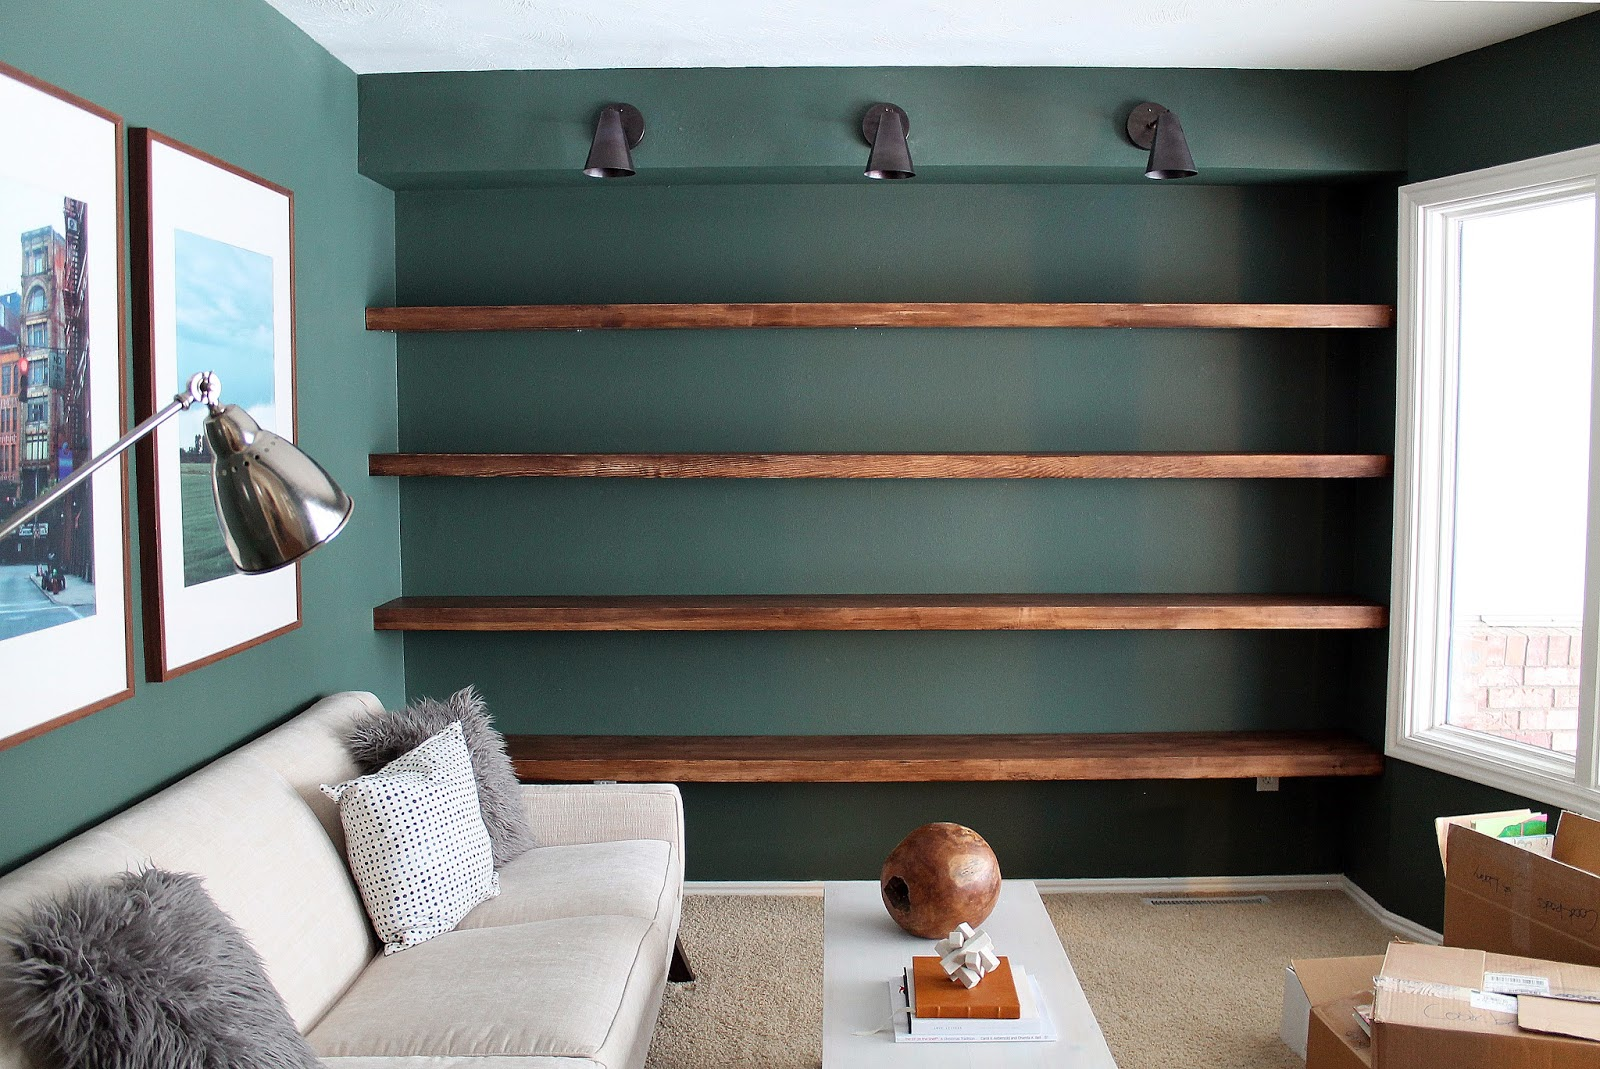 DIY Solid Wood Wall-to-Wall Shelves | Chris Loves Julia